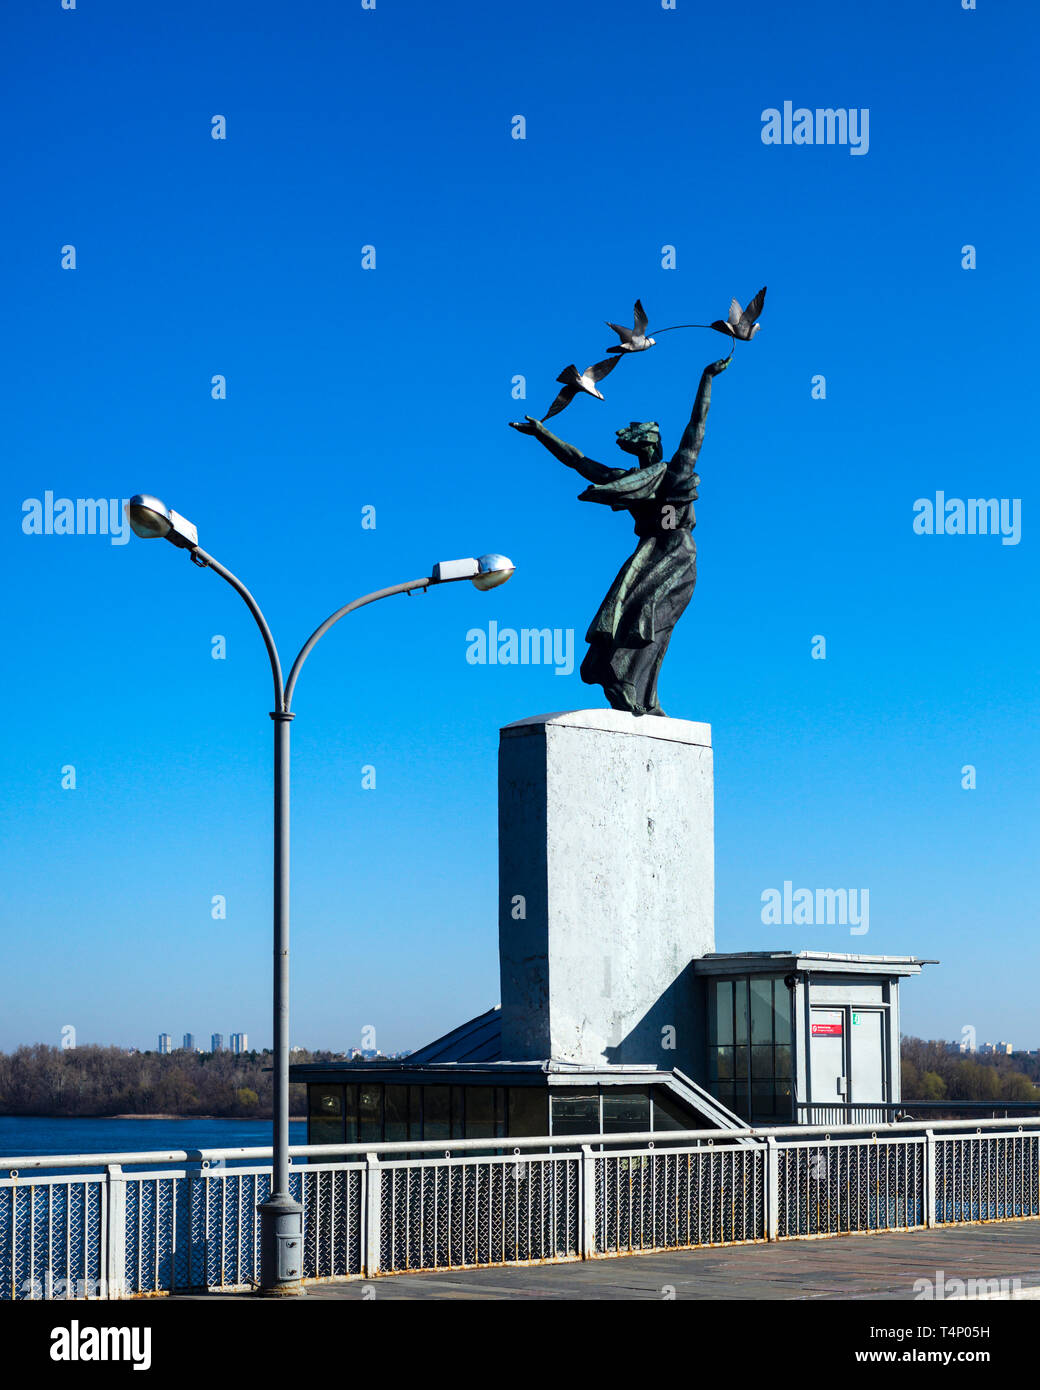 Staircase pavillon with statue of girl releasing pigeons at Dnipro metro station, Kiev, Ukraine (statues by Katsyubynsky, Kuntsevych, Horovy and Karlo - Stock Image